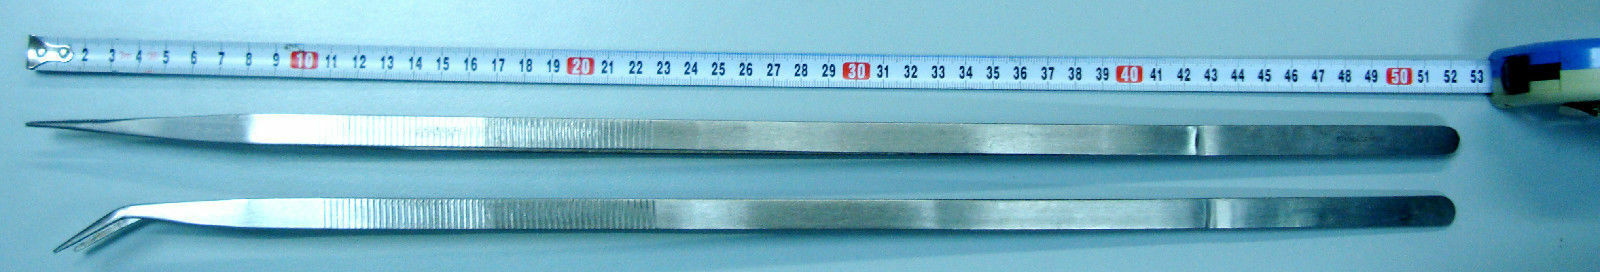 2 pcs Set or a pair of 20  500 mm EXTRA Long STAINLESS STEEL TWEEZERS -